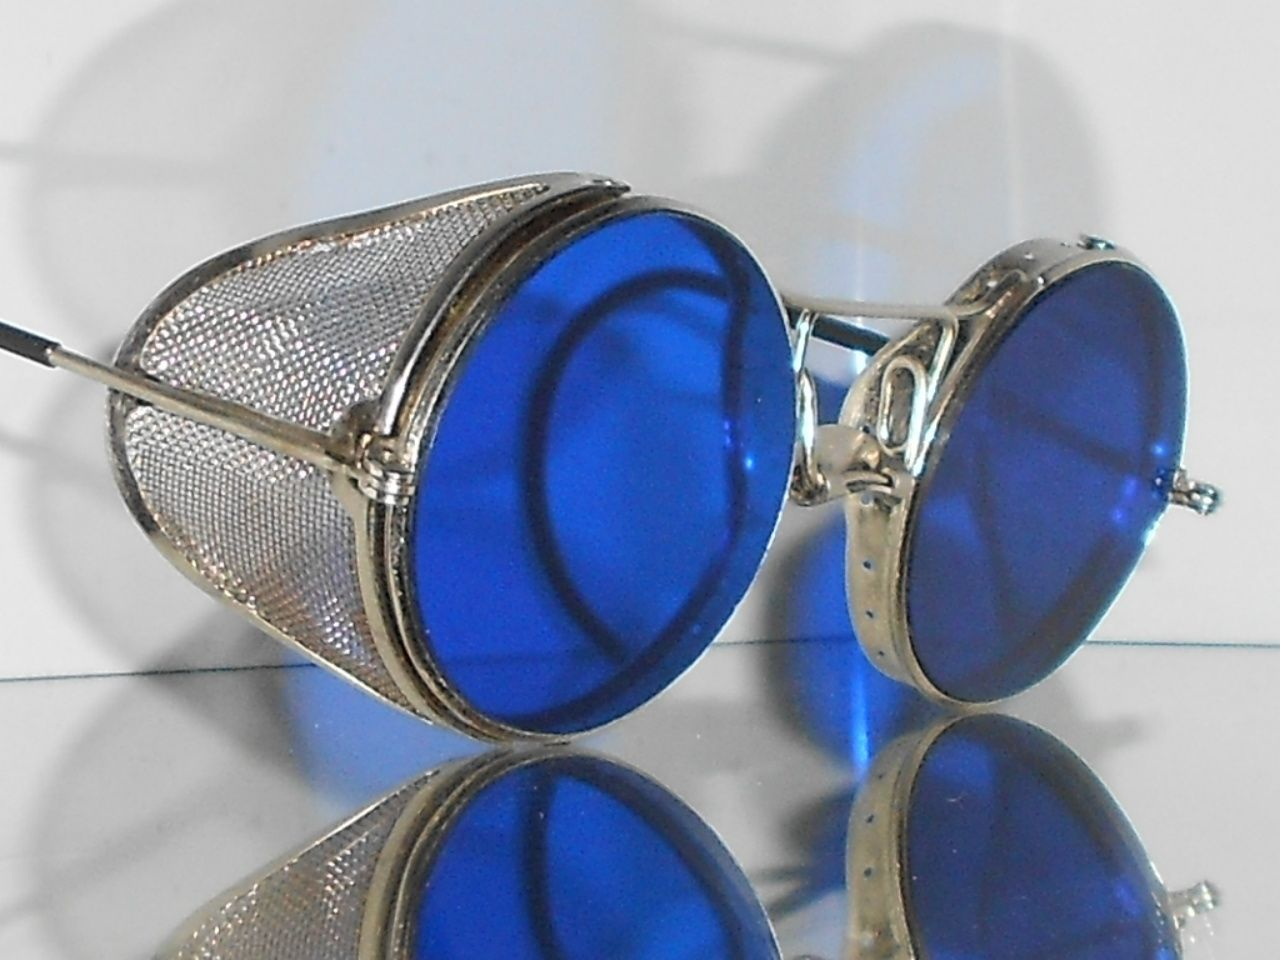 3bf83e3d0df Goggles VTG Steampunk Motorcycle Matsuda Antique safety sun glasses w  Shields